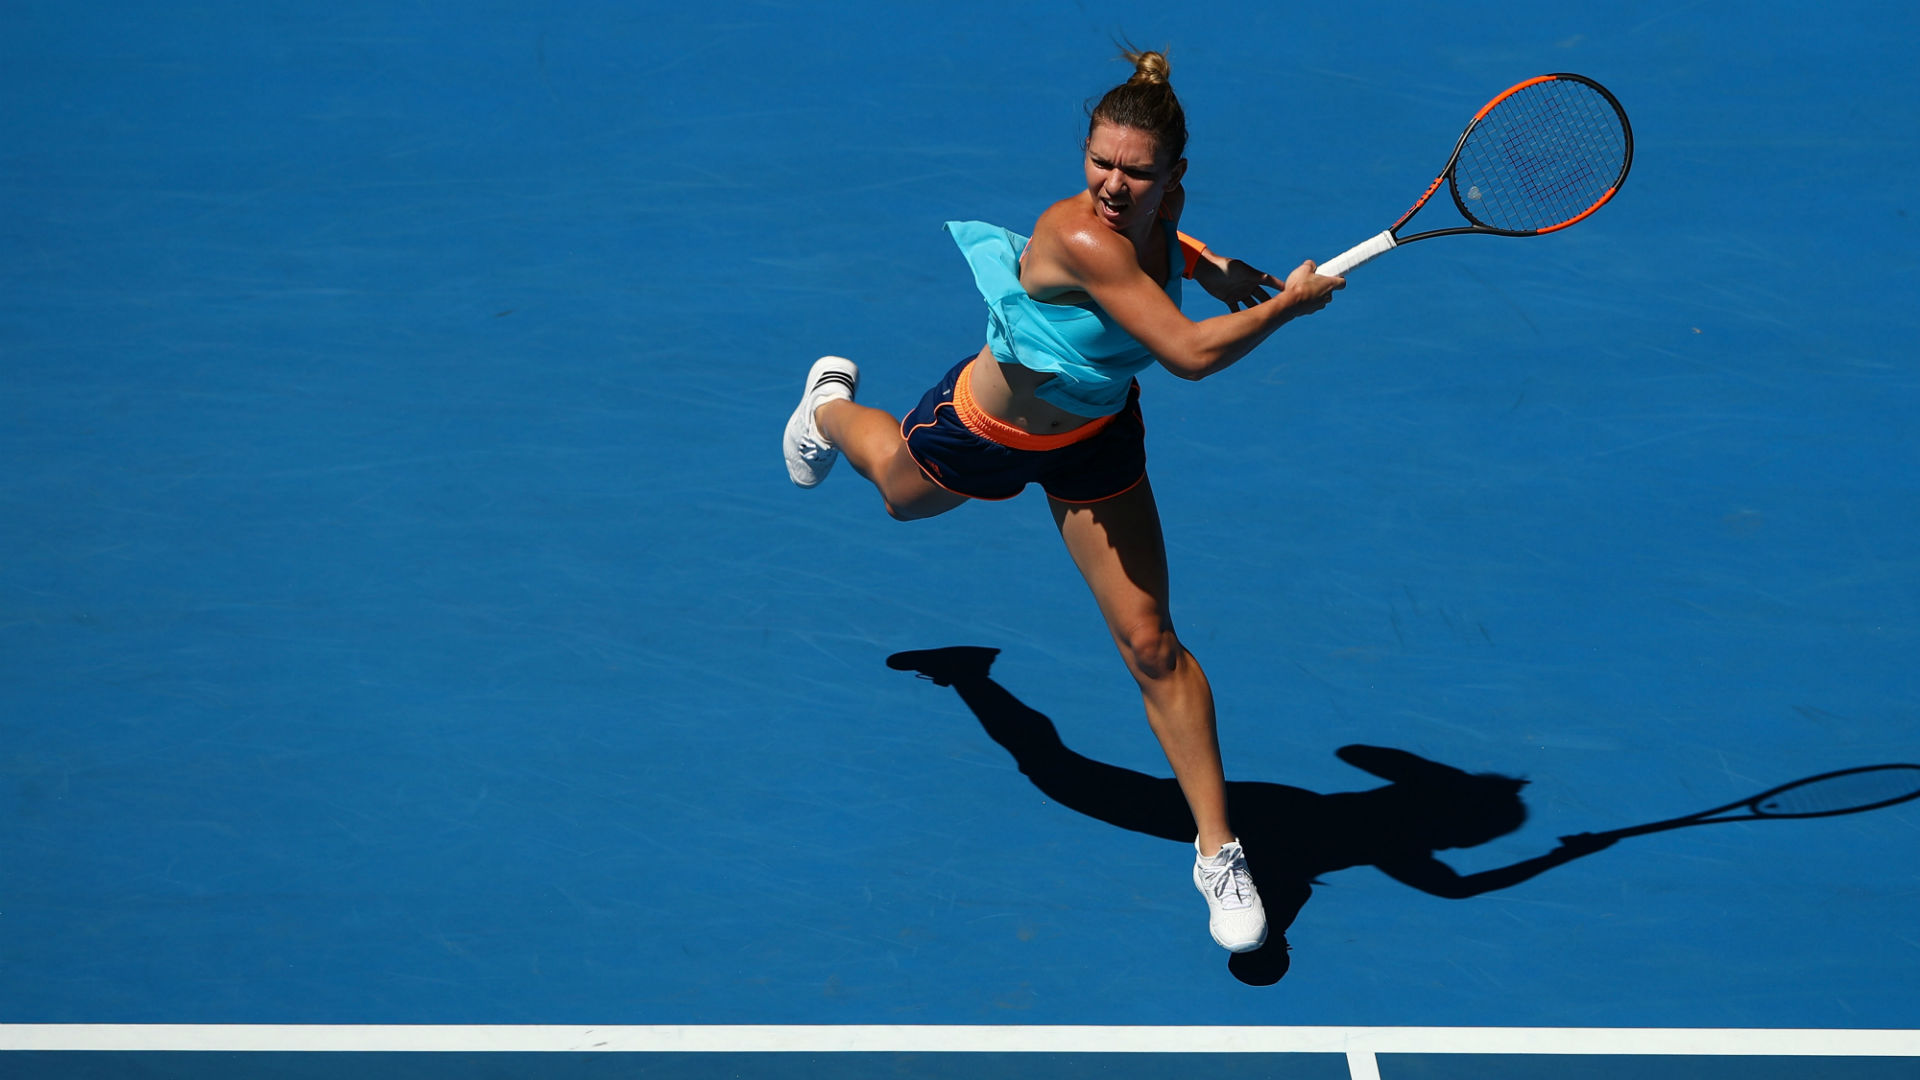 Australian Open women's draw: Simona Halep opens against local teen wild card